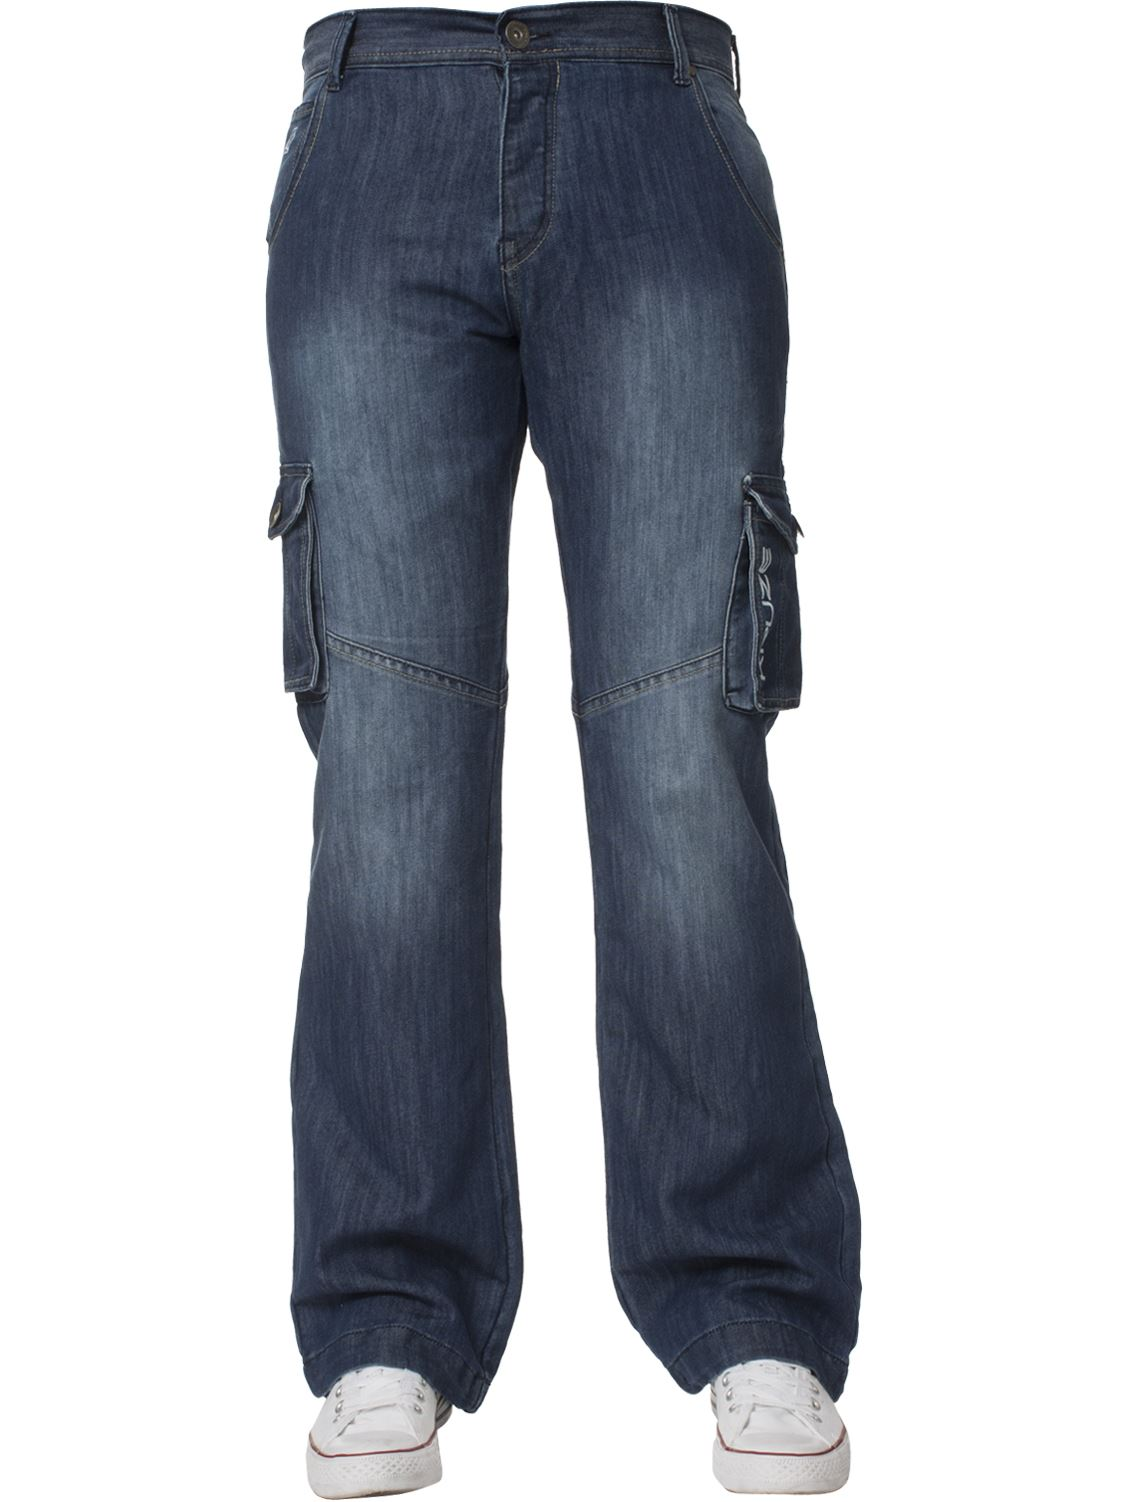 Mens-Cargo-Combat-Trousers-Jeans-Heavy-Duty-Work-Casual-Pants-Big-Tall-All-Sizes thumbnail 33